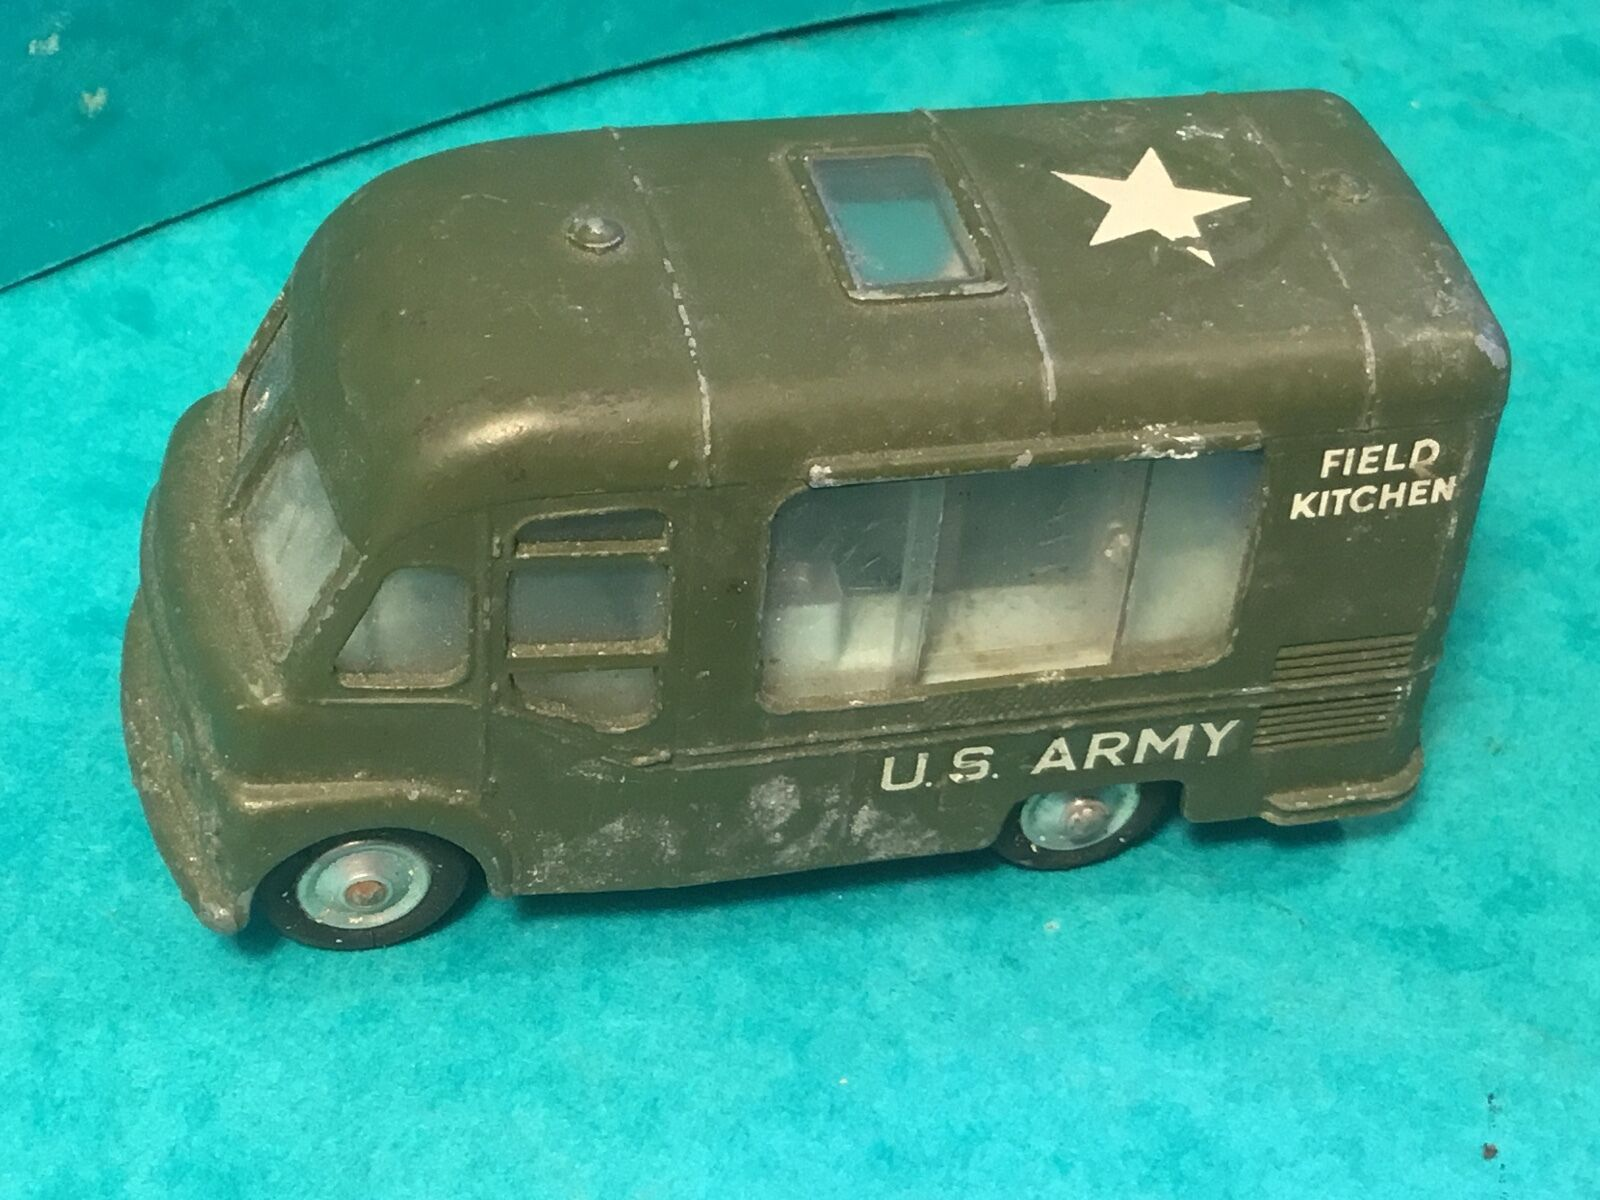 Corgi toys smith,s karrier van u.s army field kitchen 21101 59 no box collectors